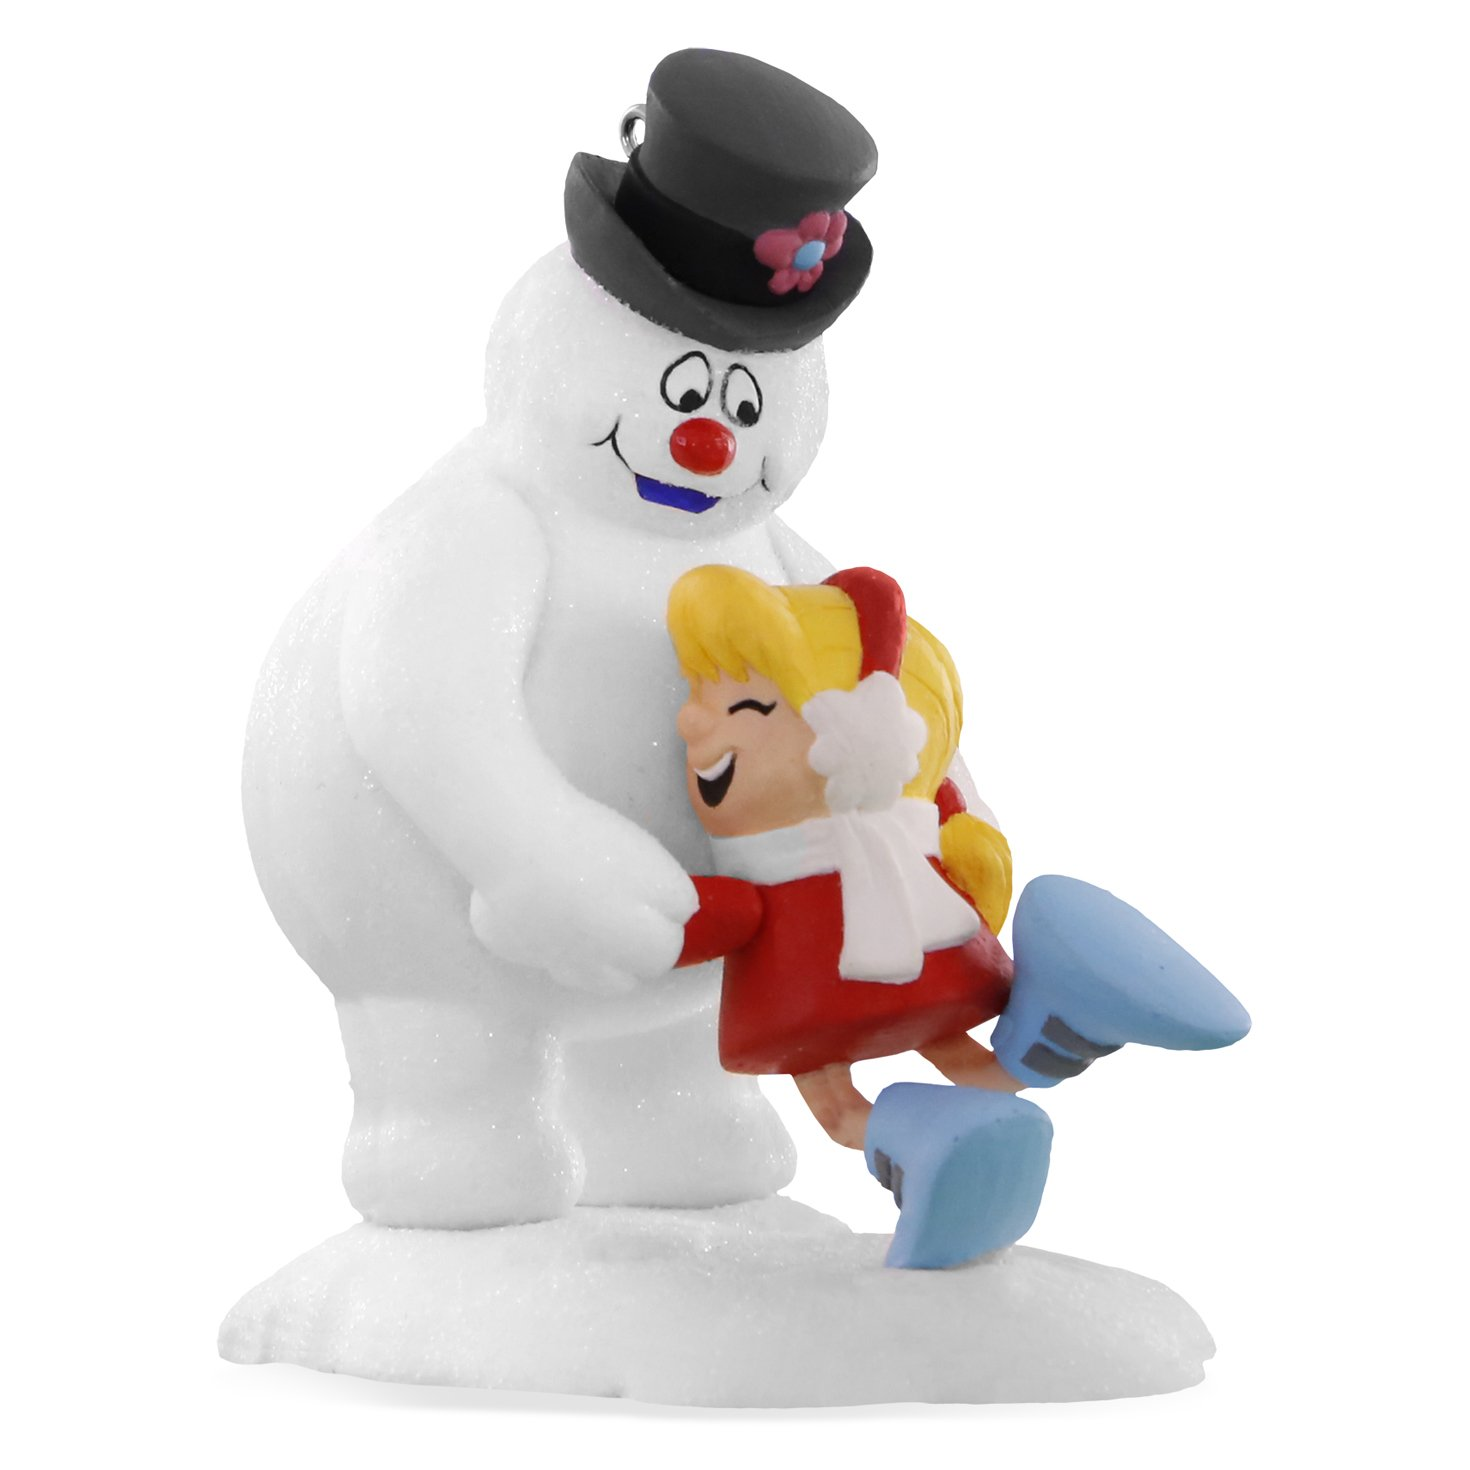 Image of Cute Karen Hugging Frosty the Snowman Ornament